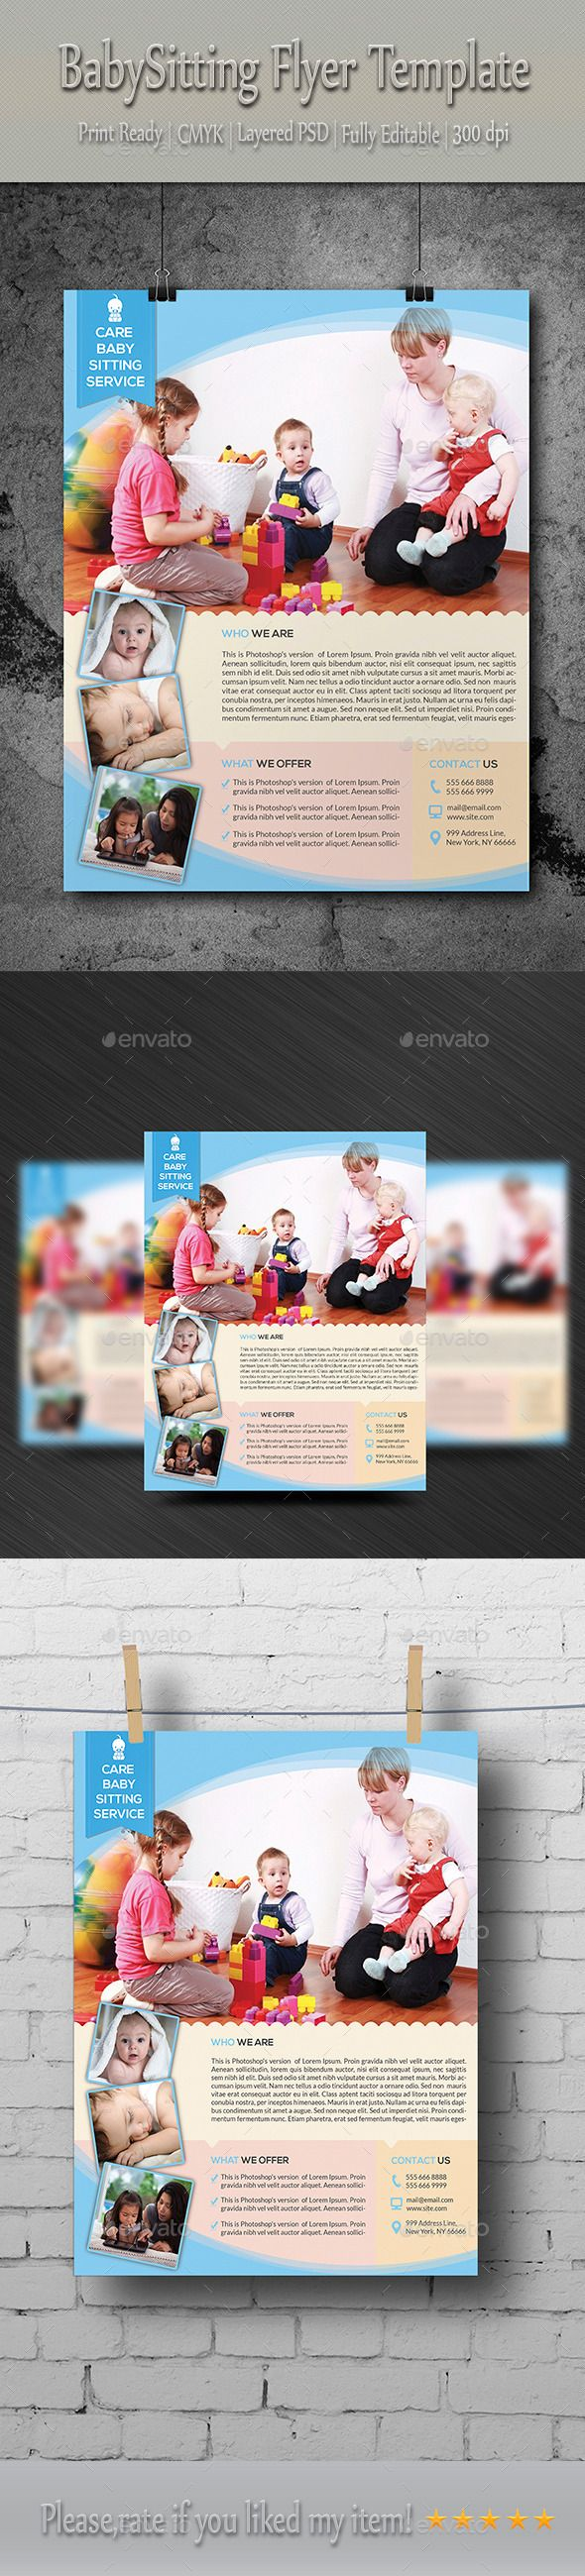 babysitting daycare flyer template flyer template flyers and babysitting daycare flyer template psd buy and graphicriver